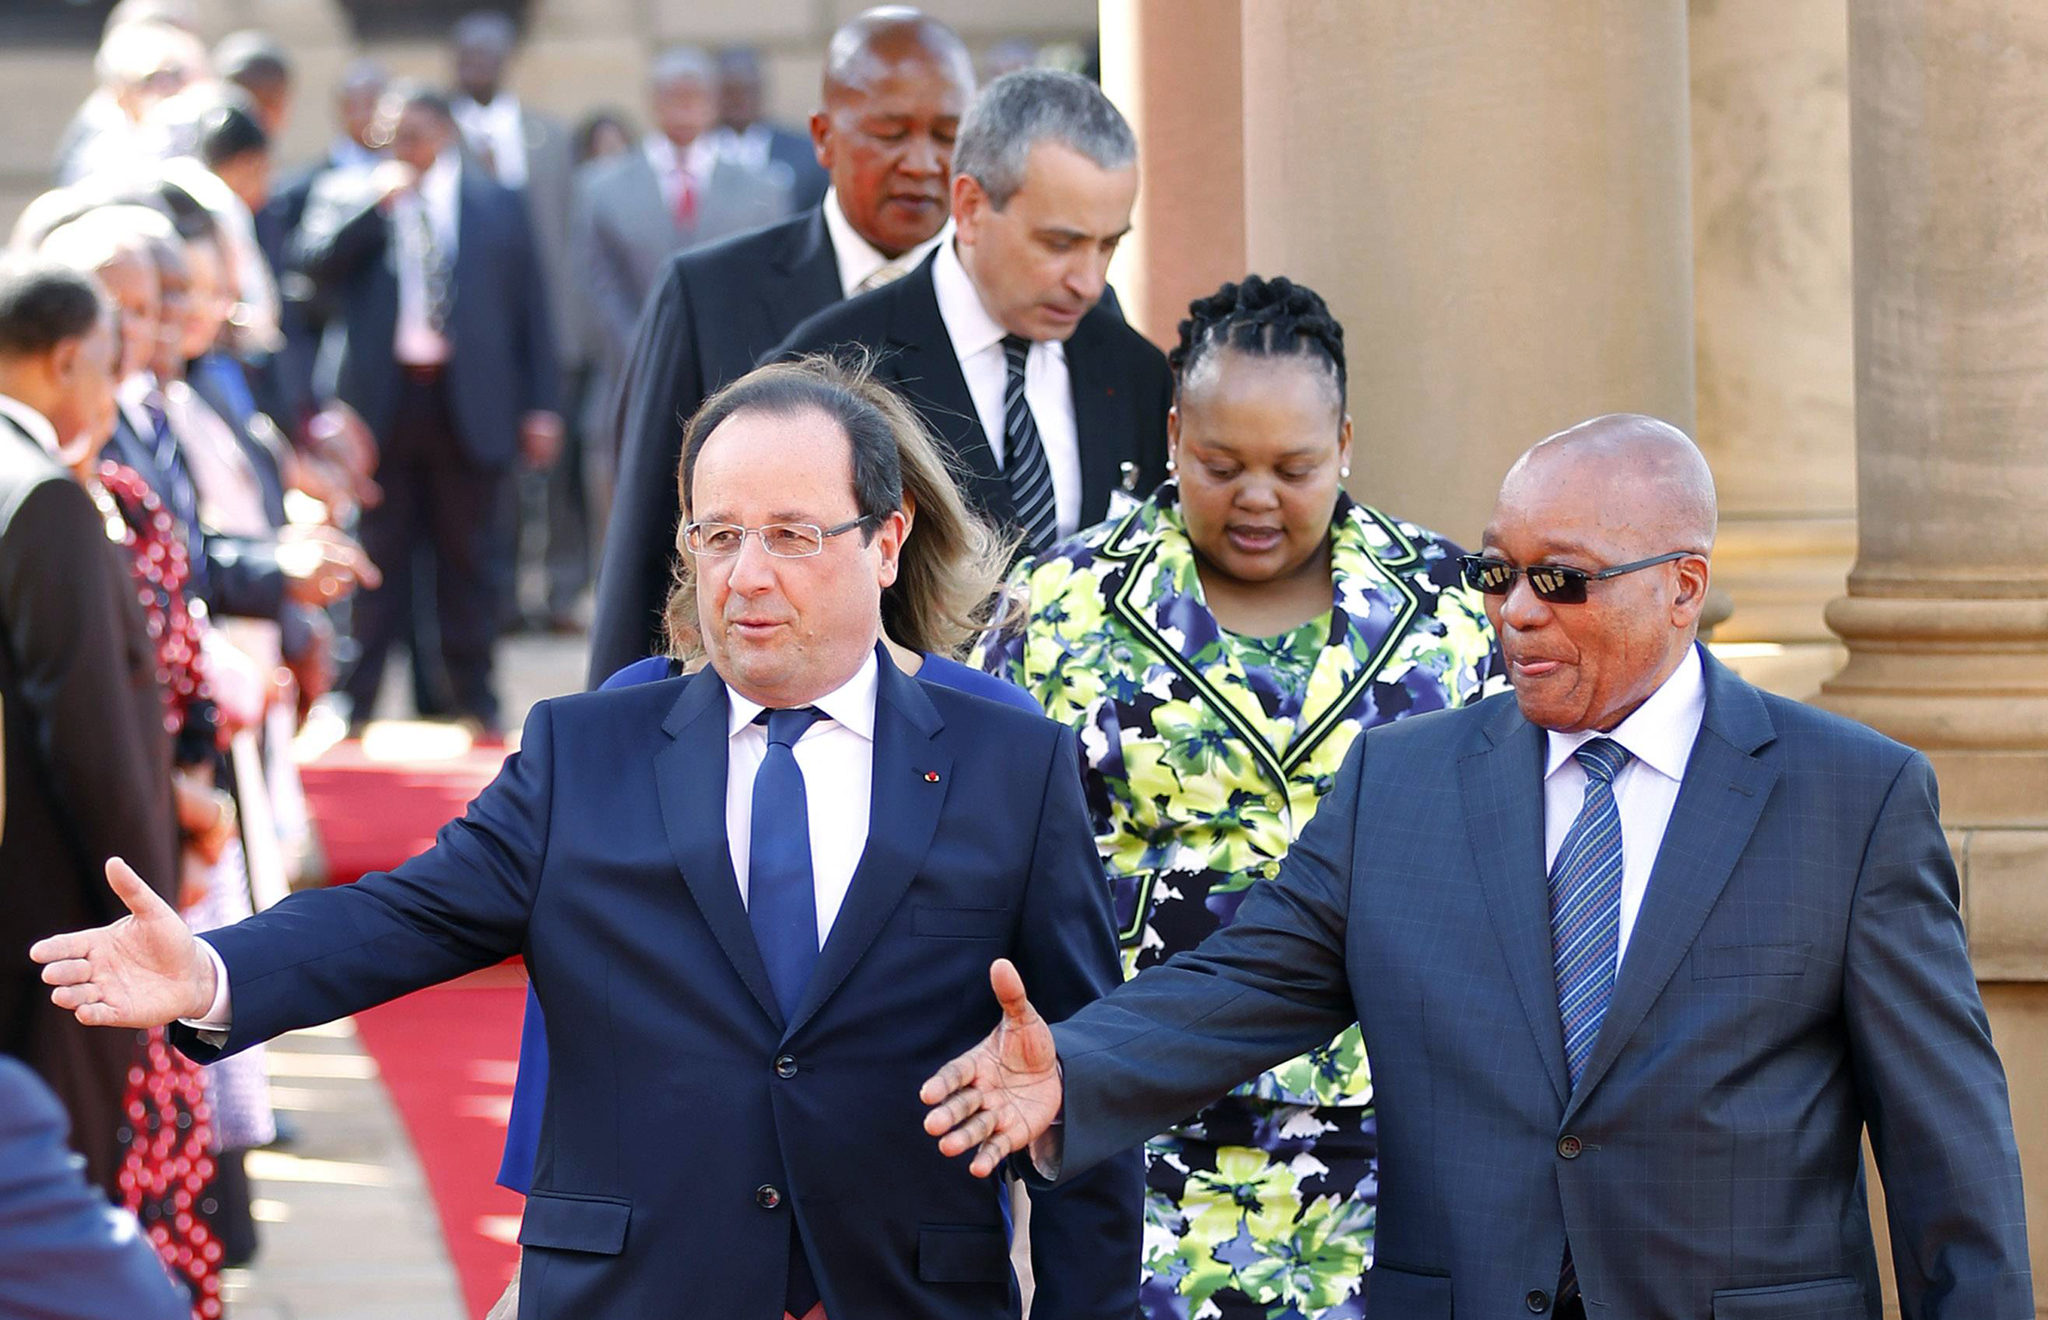 French President Francois Hollande introduces his delegation to South Africa's President Jacob Zuma at the Union Building in Pretoria...French President Francois Hollande (L) introduces his delegation to South Africa's President Jacob Zuma at the Union Building in Pretoria October 14, 2013. France will lend 100 million euros ($135 million) to South African state power utility Eskom to help it finance solar power projects in Africa's largest economy, according to a communique obtained by Reuters on Monday. The deal will be signed as a part of a summit between Hollande and Zuma, which started on Monday in Pretoria. REUTERS/Siphiwe Sibeko